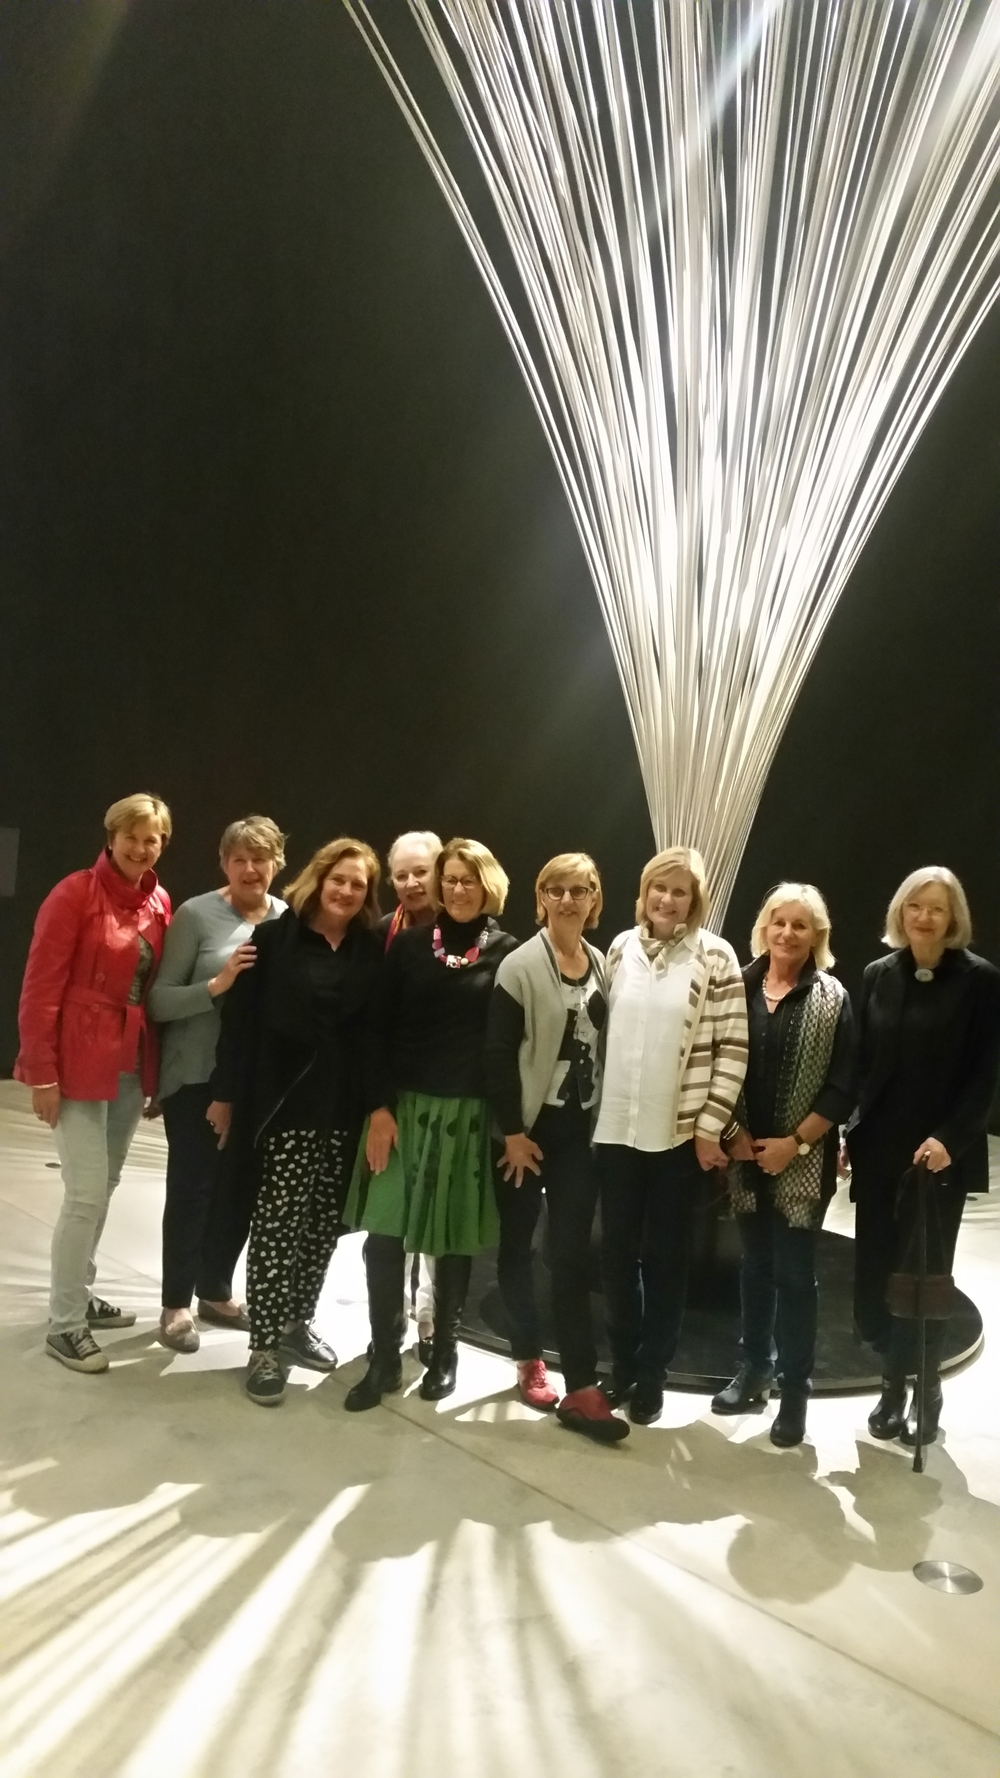 Et Alia art group and Lesley Kreisler with large Len Lye Fountain